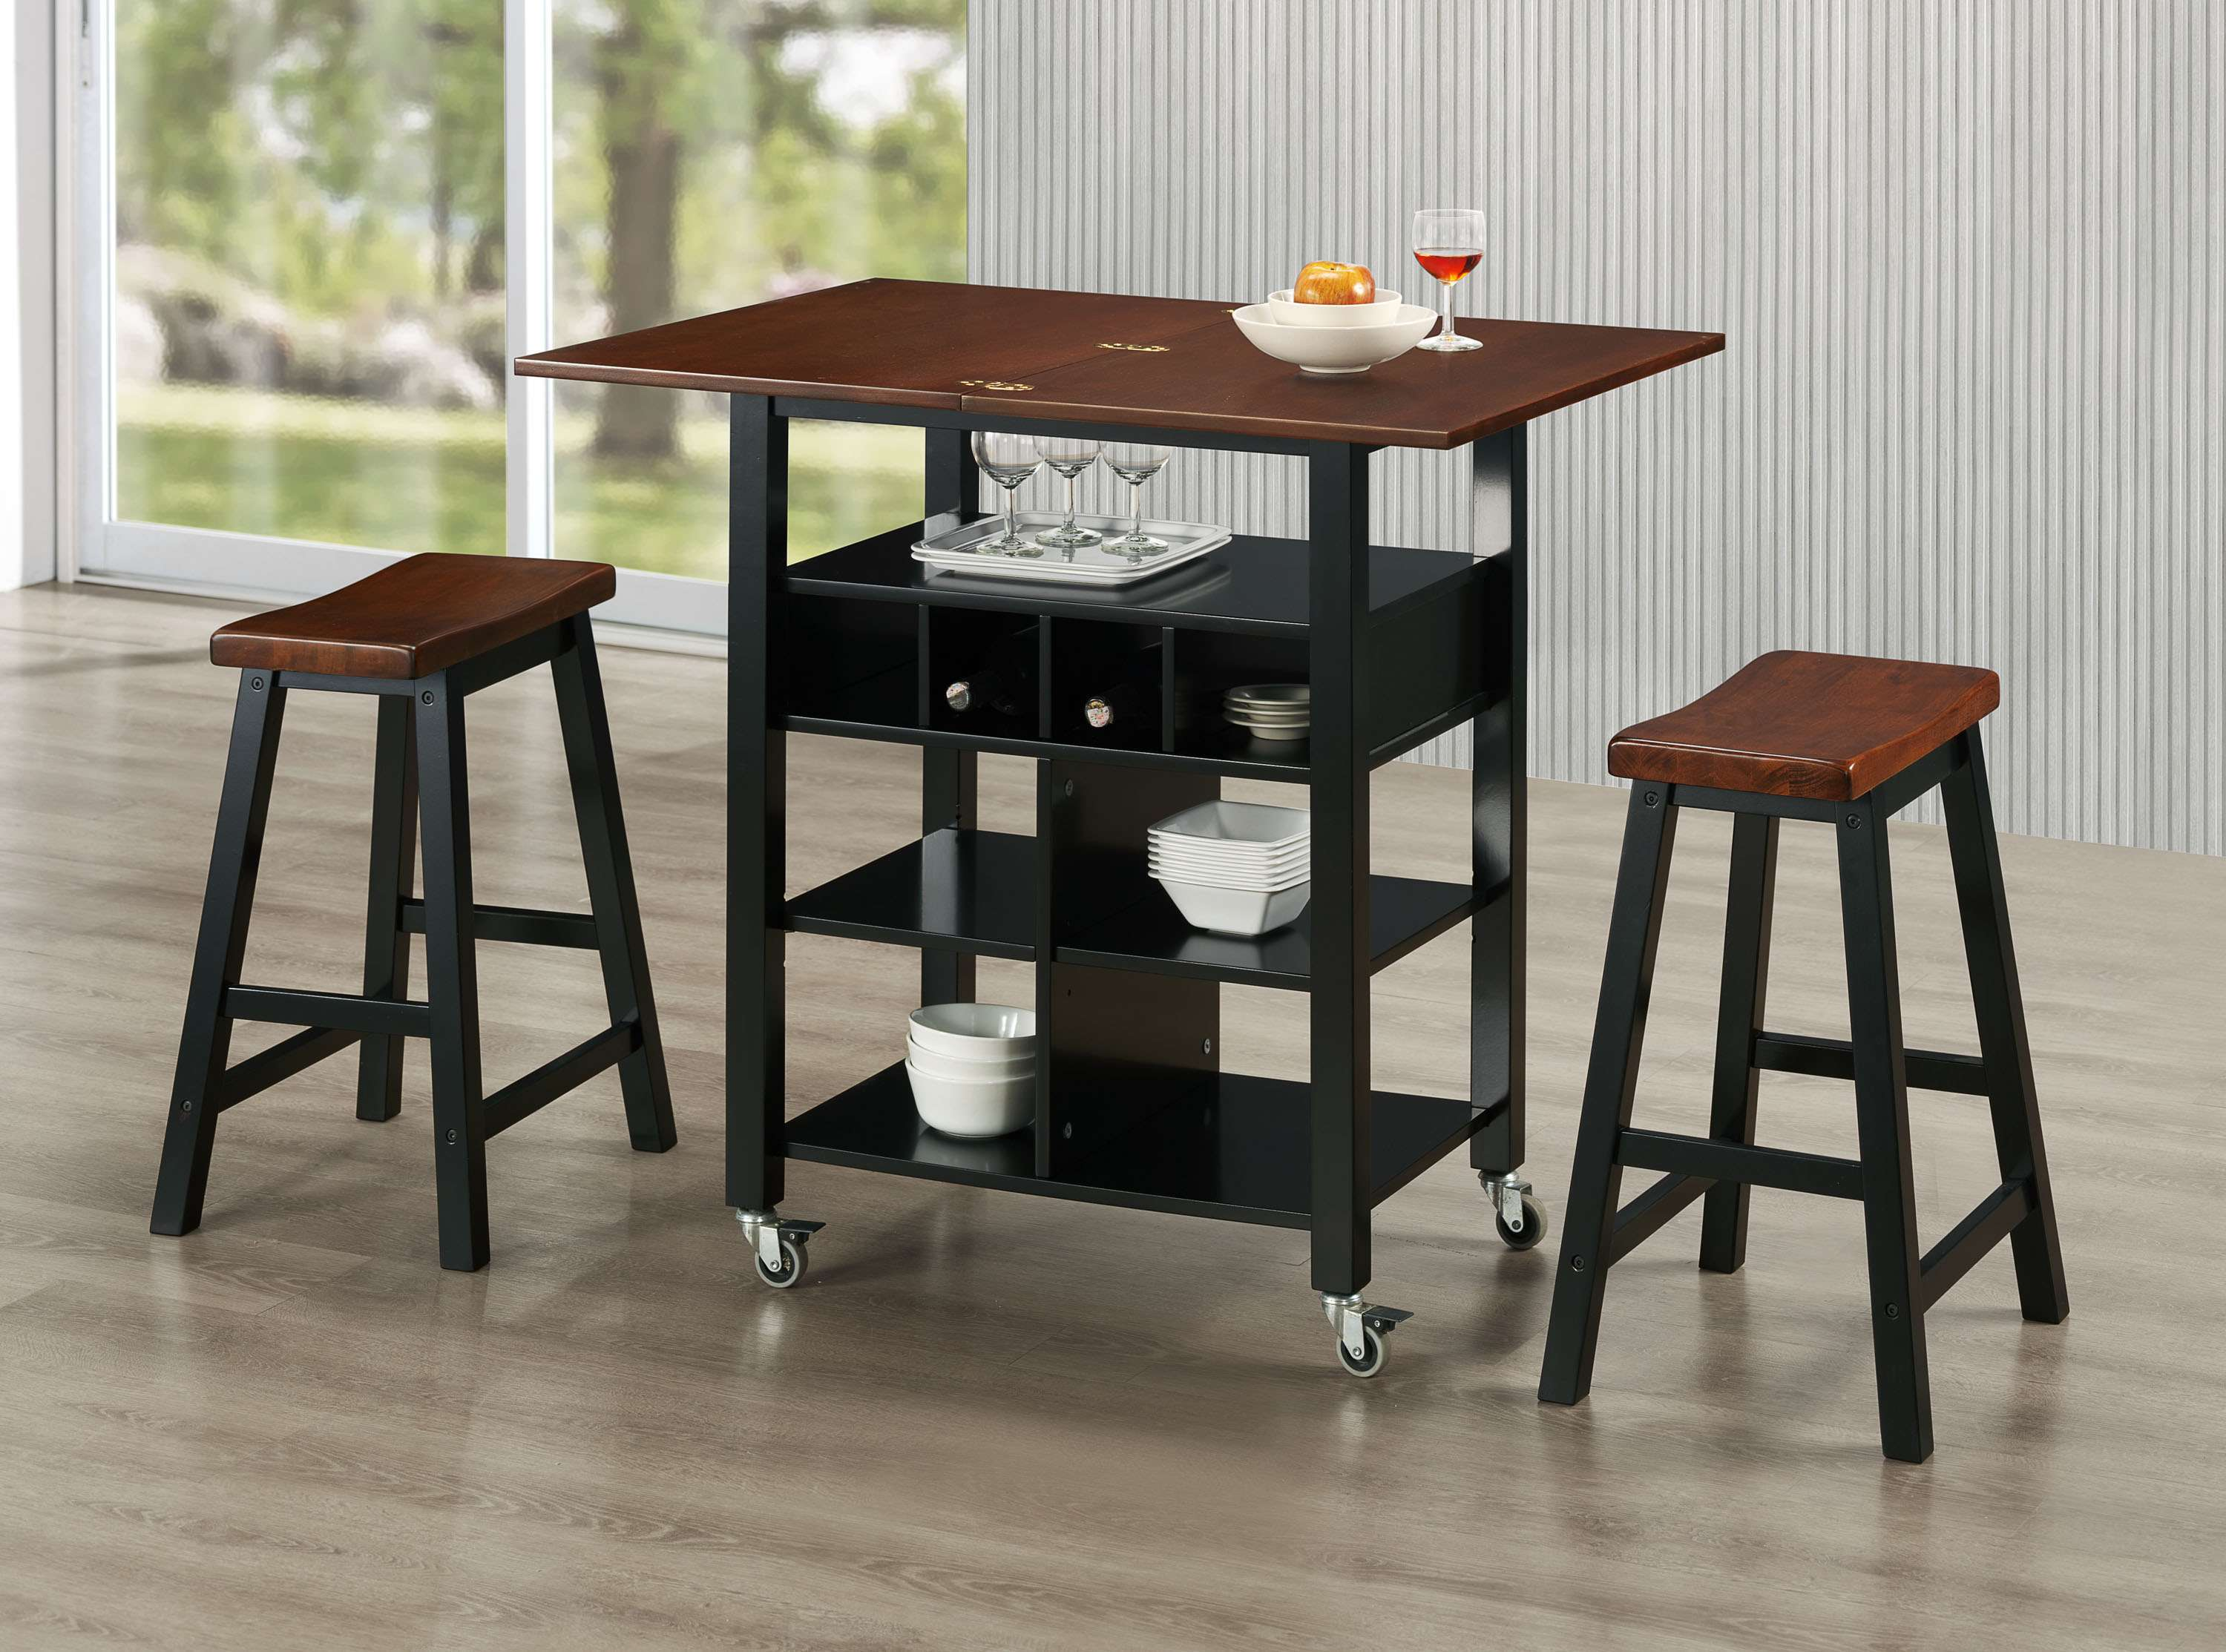 4d Concepts Phoenix Mahogany And Black Kitchen Island With 2